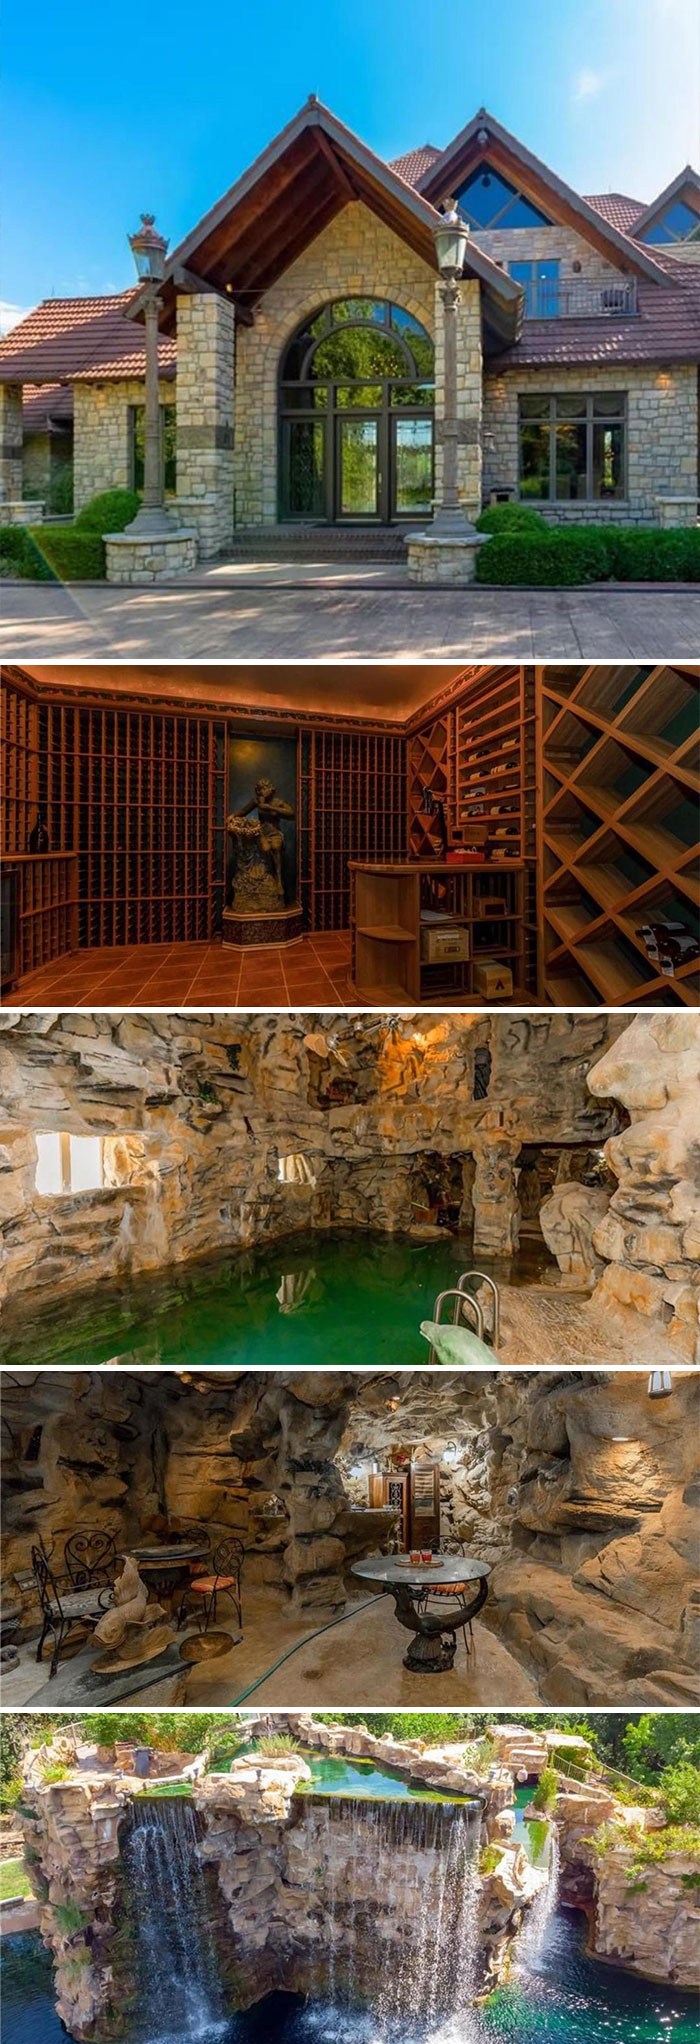 "20 Of The Weirdest And Most Interesting Real Estate Listings Shared By ""Zillow Gone Wild"""